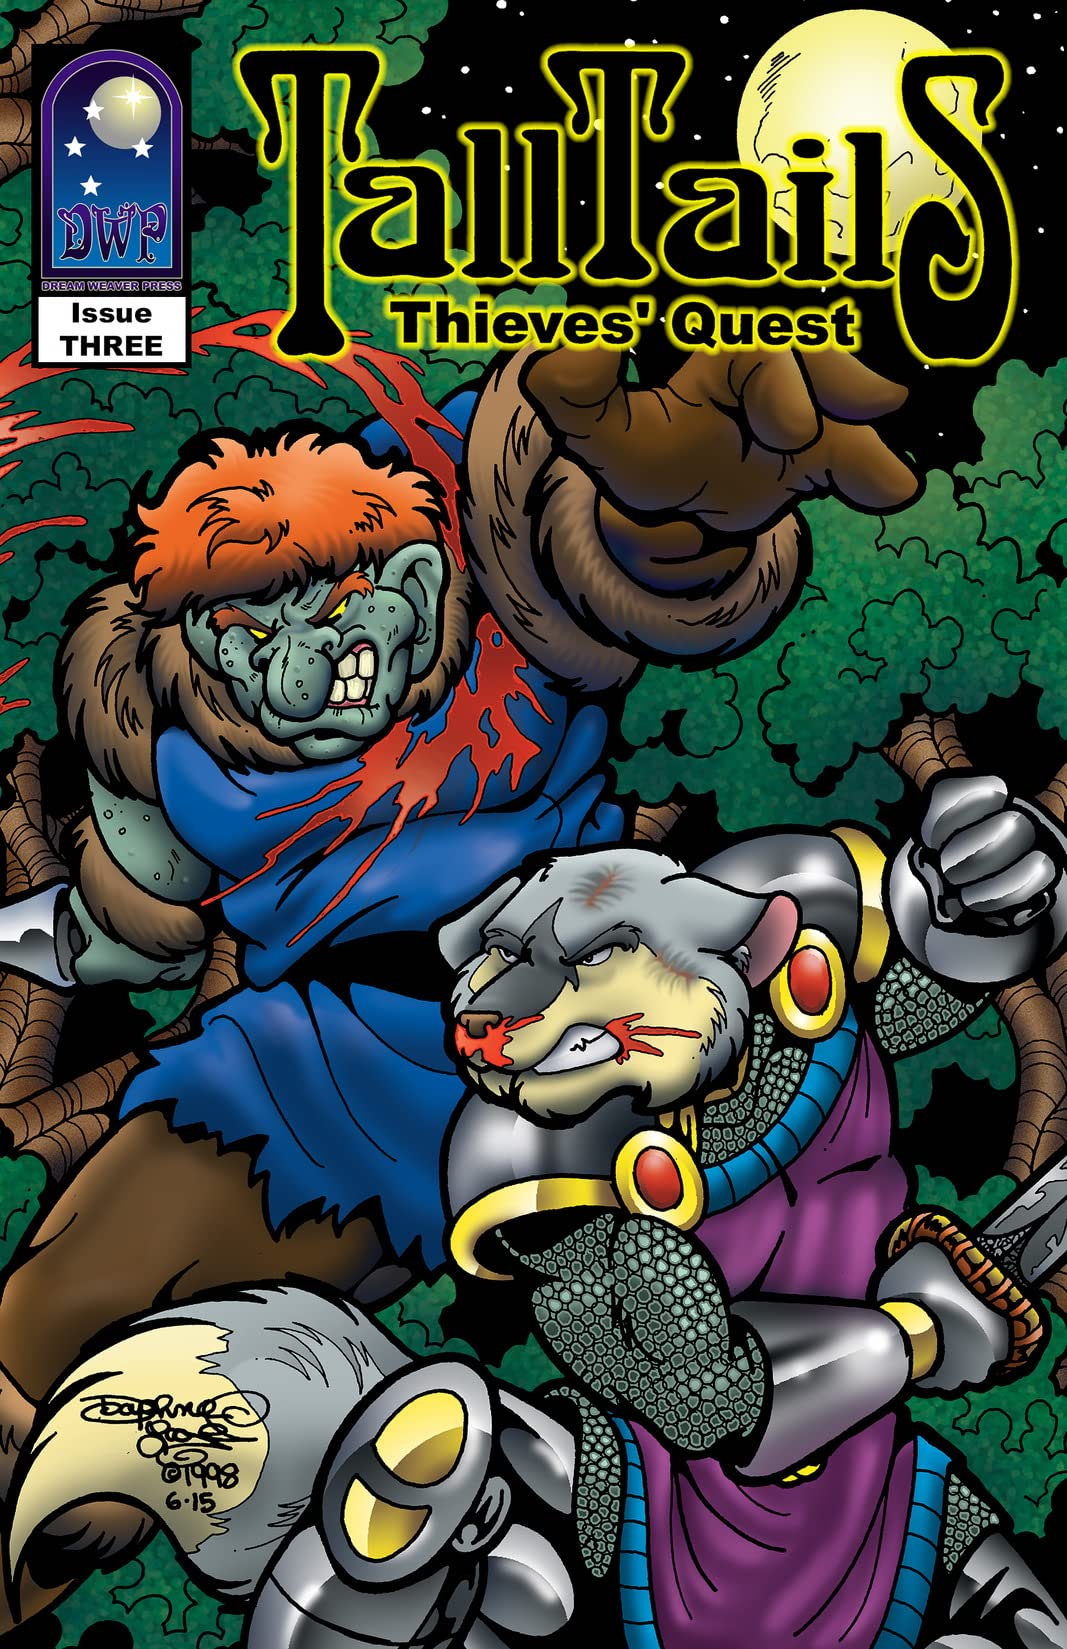 Tall Tails: Thieves' Quest #3